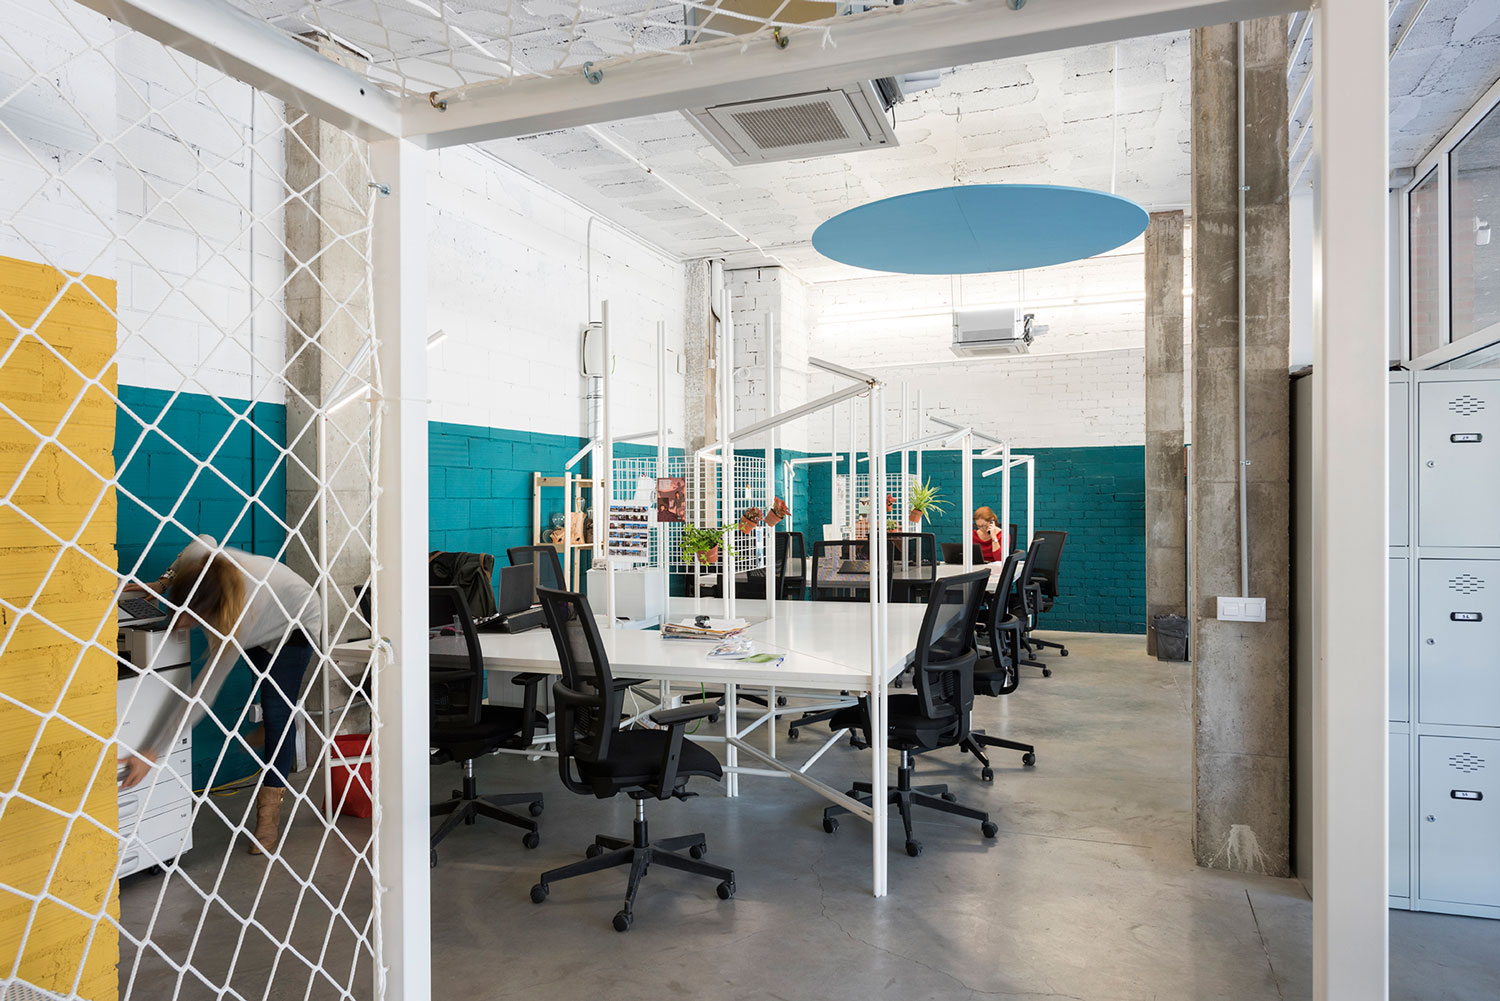 Sinrgics Social Co Working Space In Barcelona By Casa Yellowtrace Sinergi Mind Located Barcelonas Community Of Bar De Viver Is The Areas First 200 Sqm Interior Has Been Completely